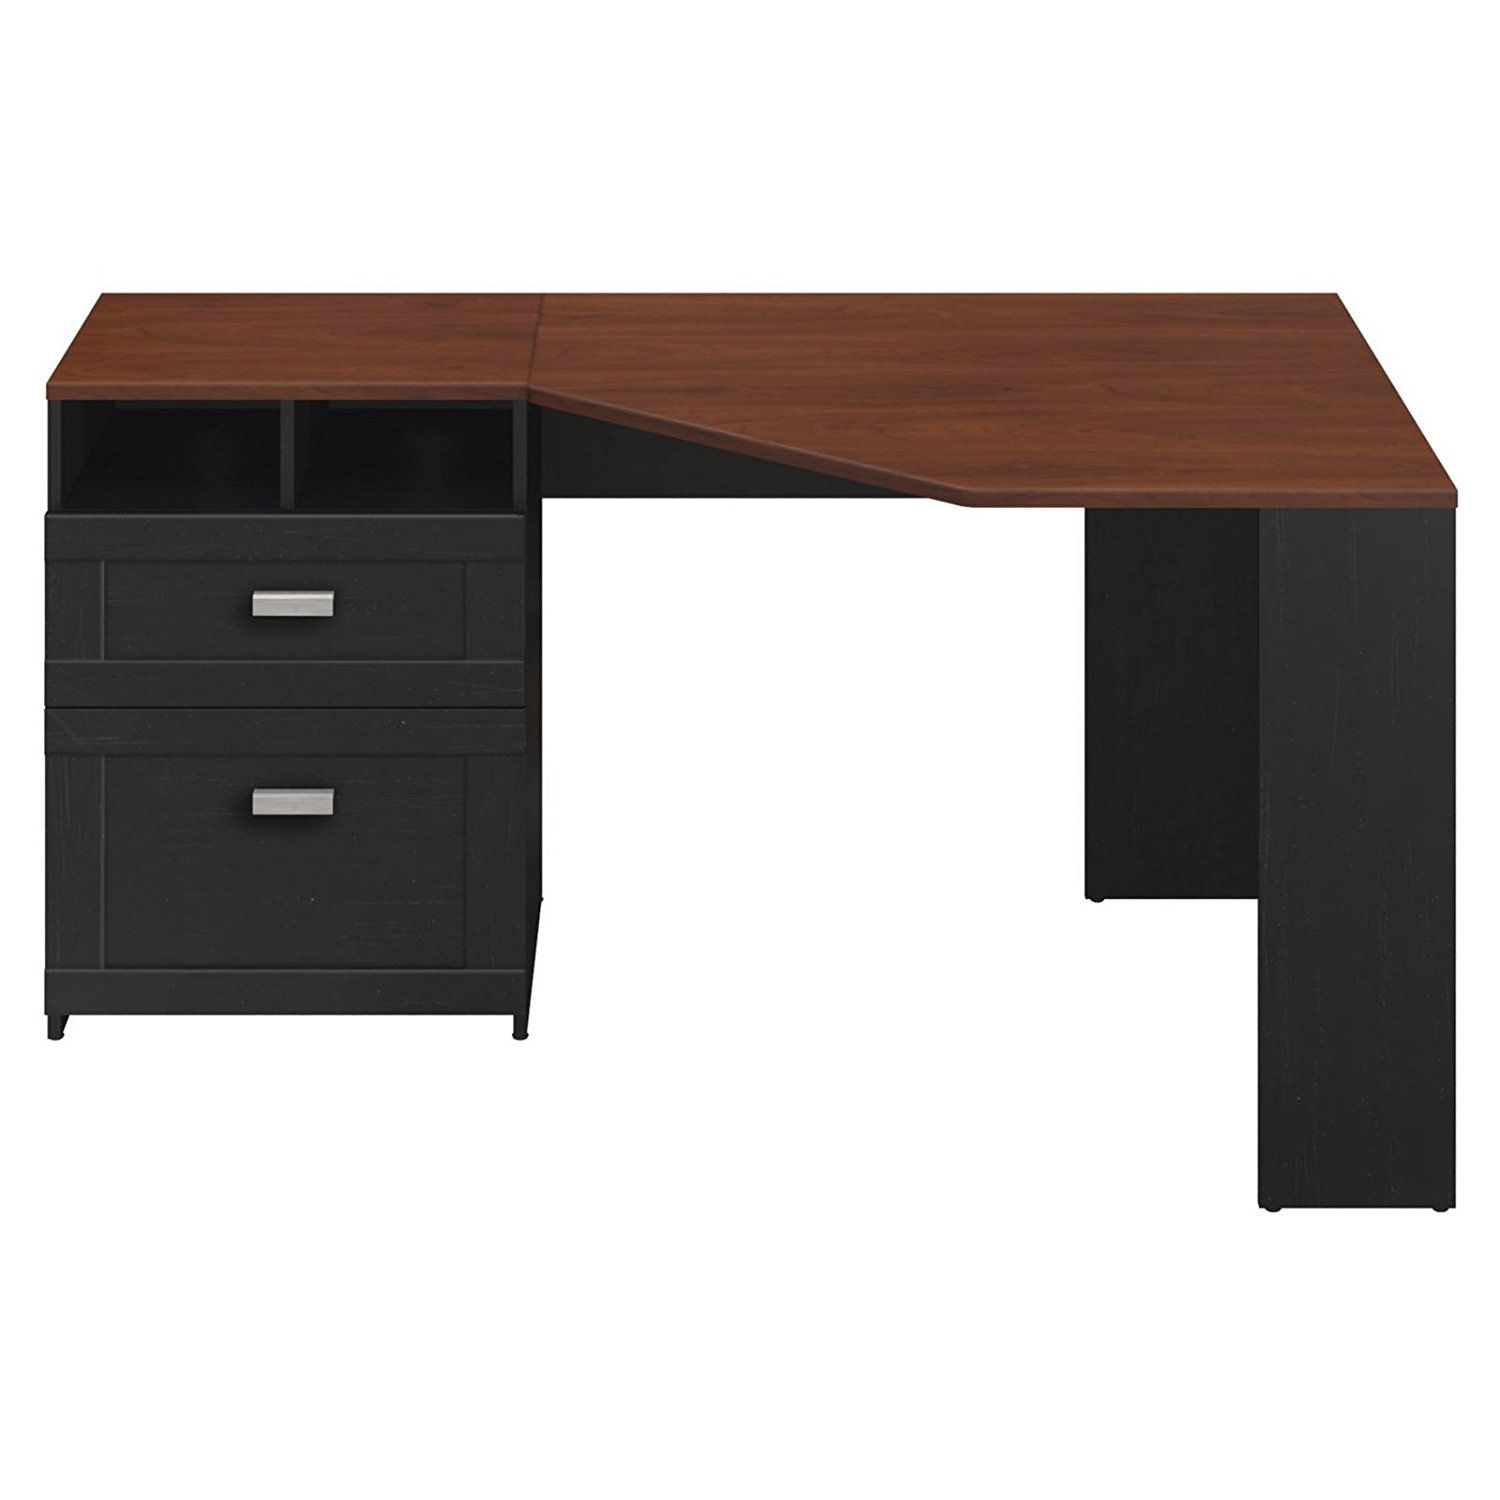 99+ Corner Desk Amazon - Large Home Office Furniture Check more at ...